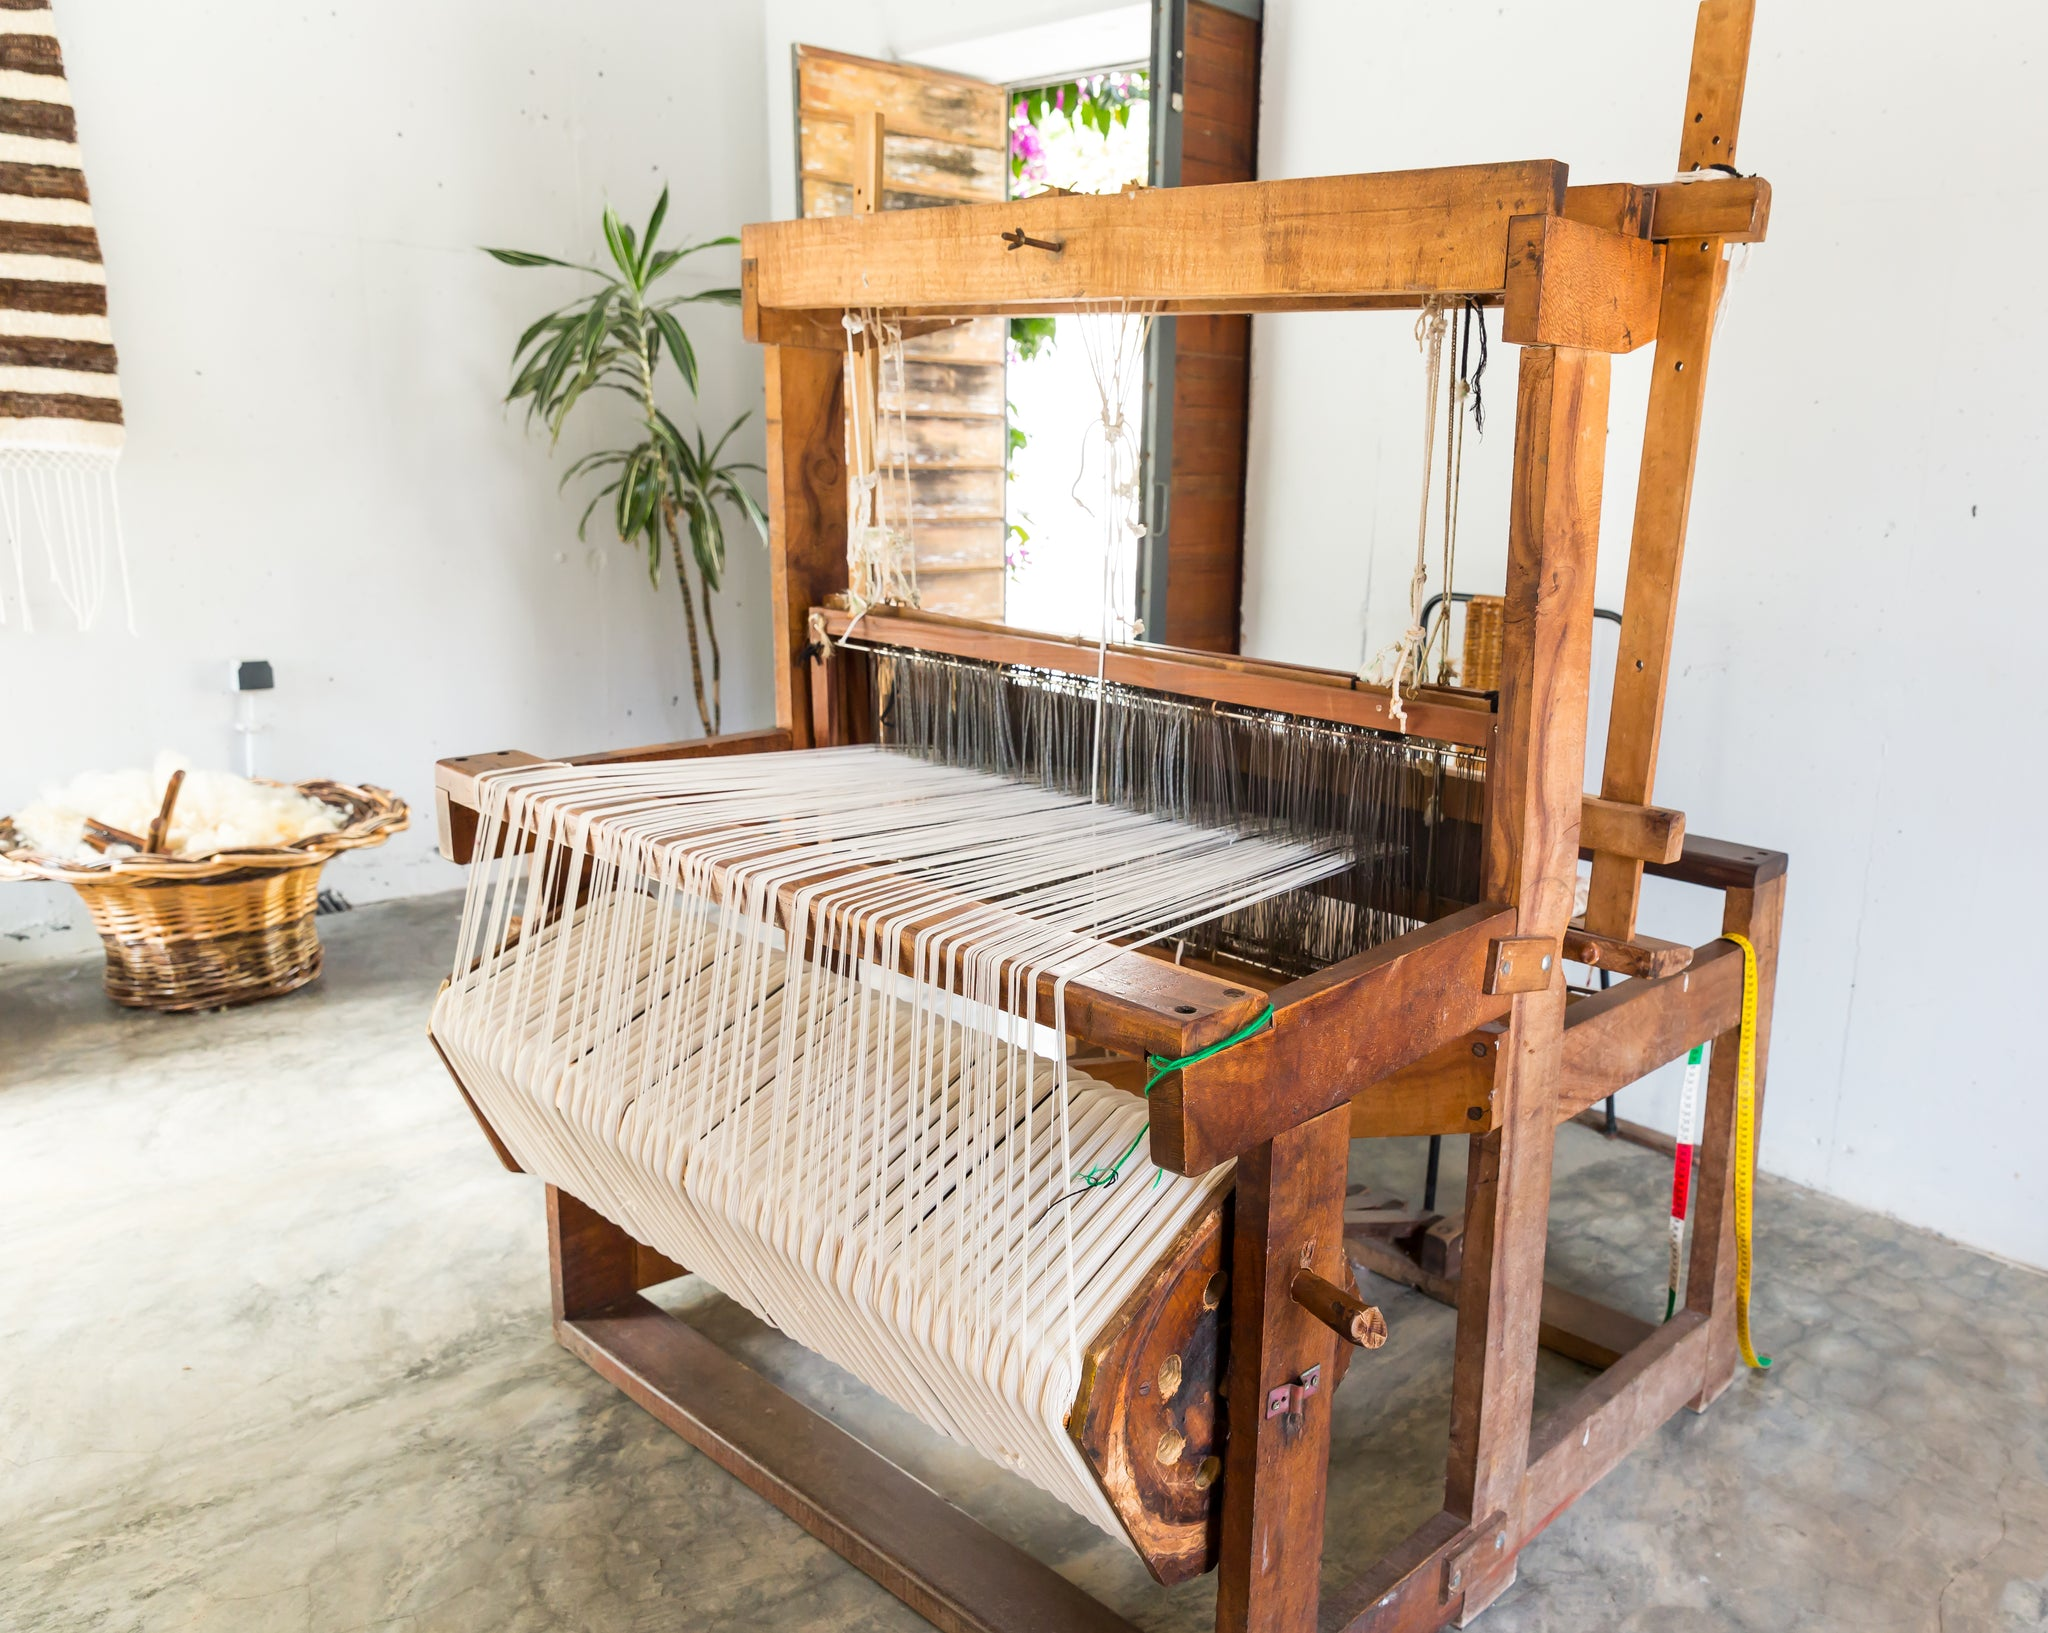 Traditional Turkish shuttle loom used in production of turkish cotton towels